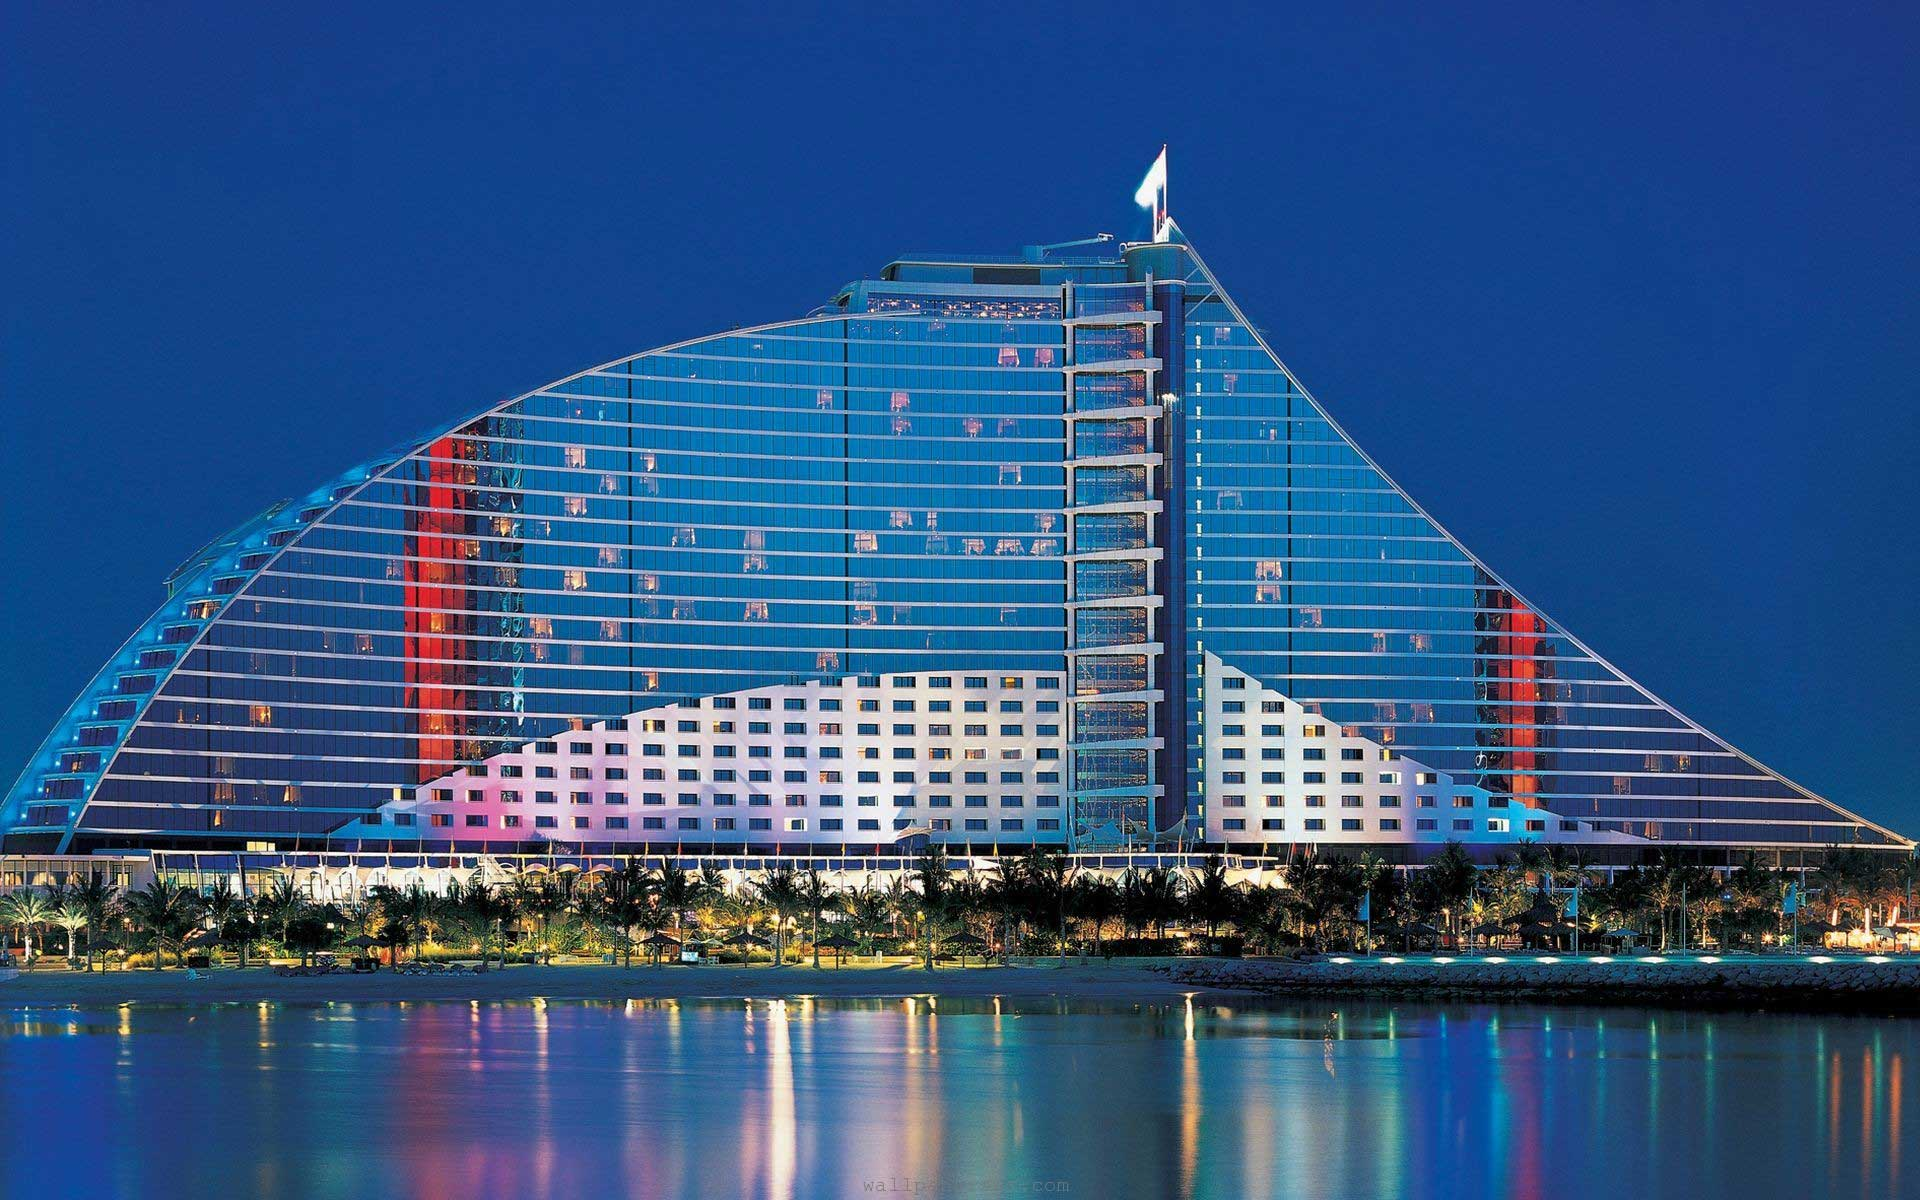 Meydan race season 2014 hotel deal with the ritz carlton for Dubai hotel deals